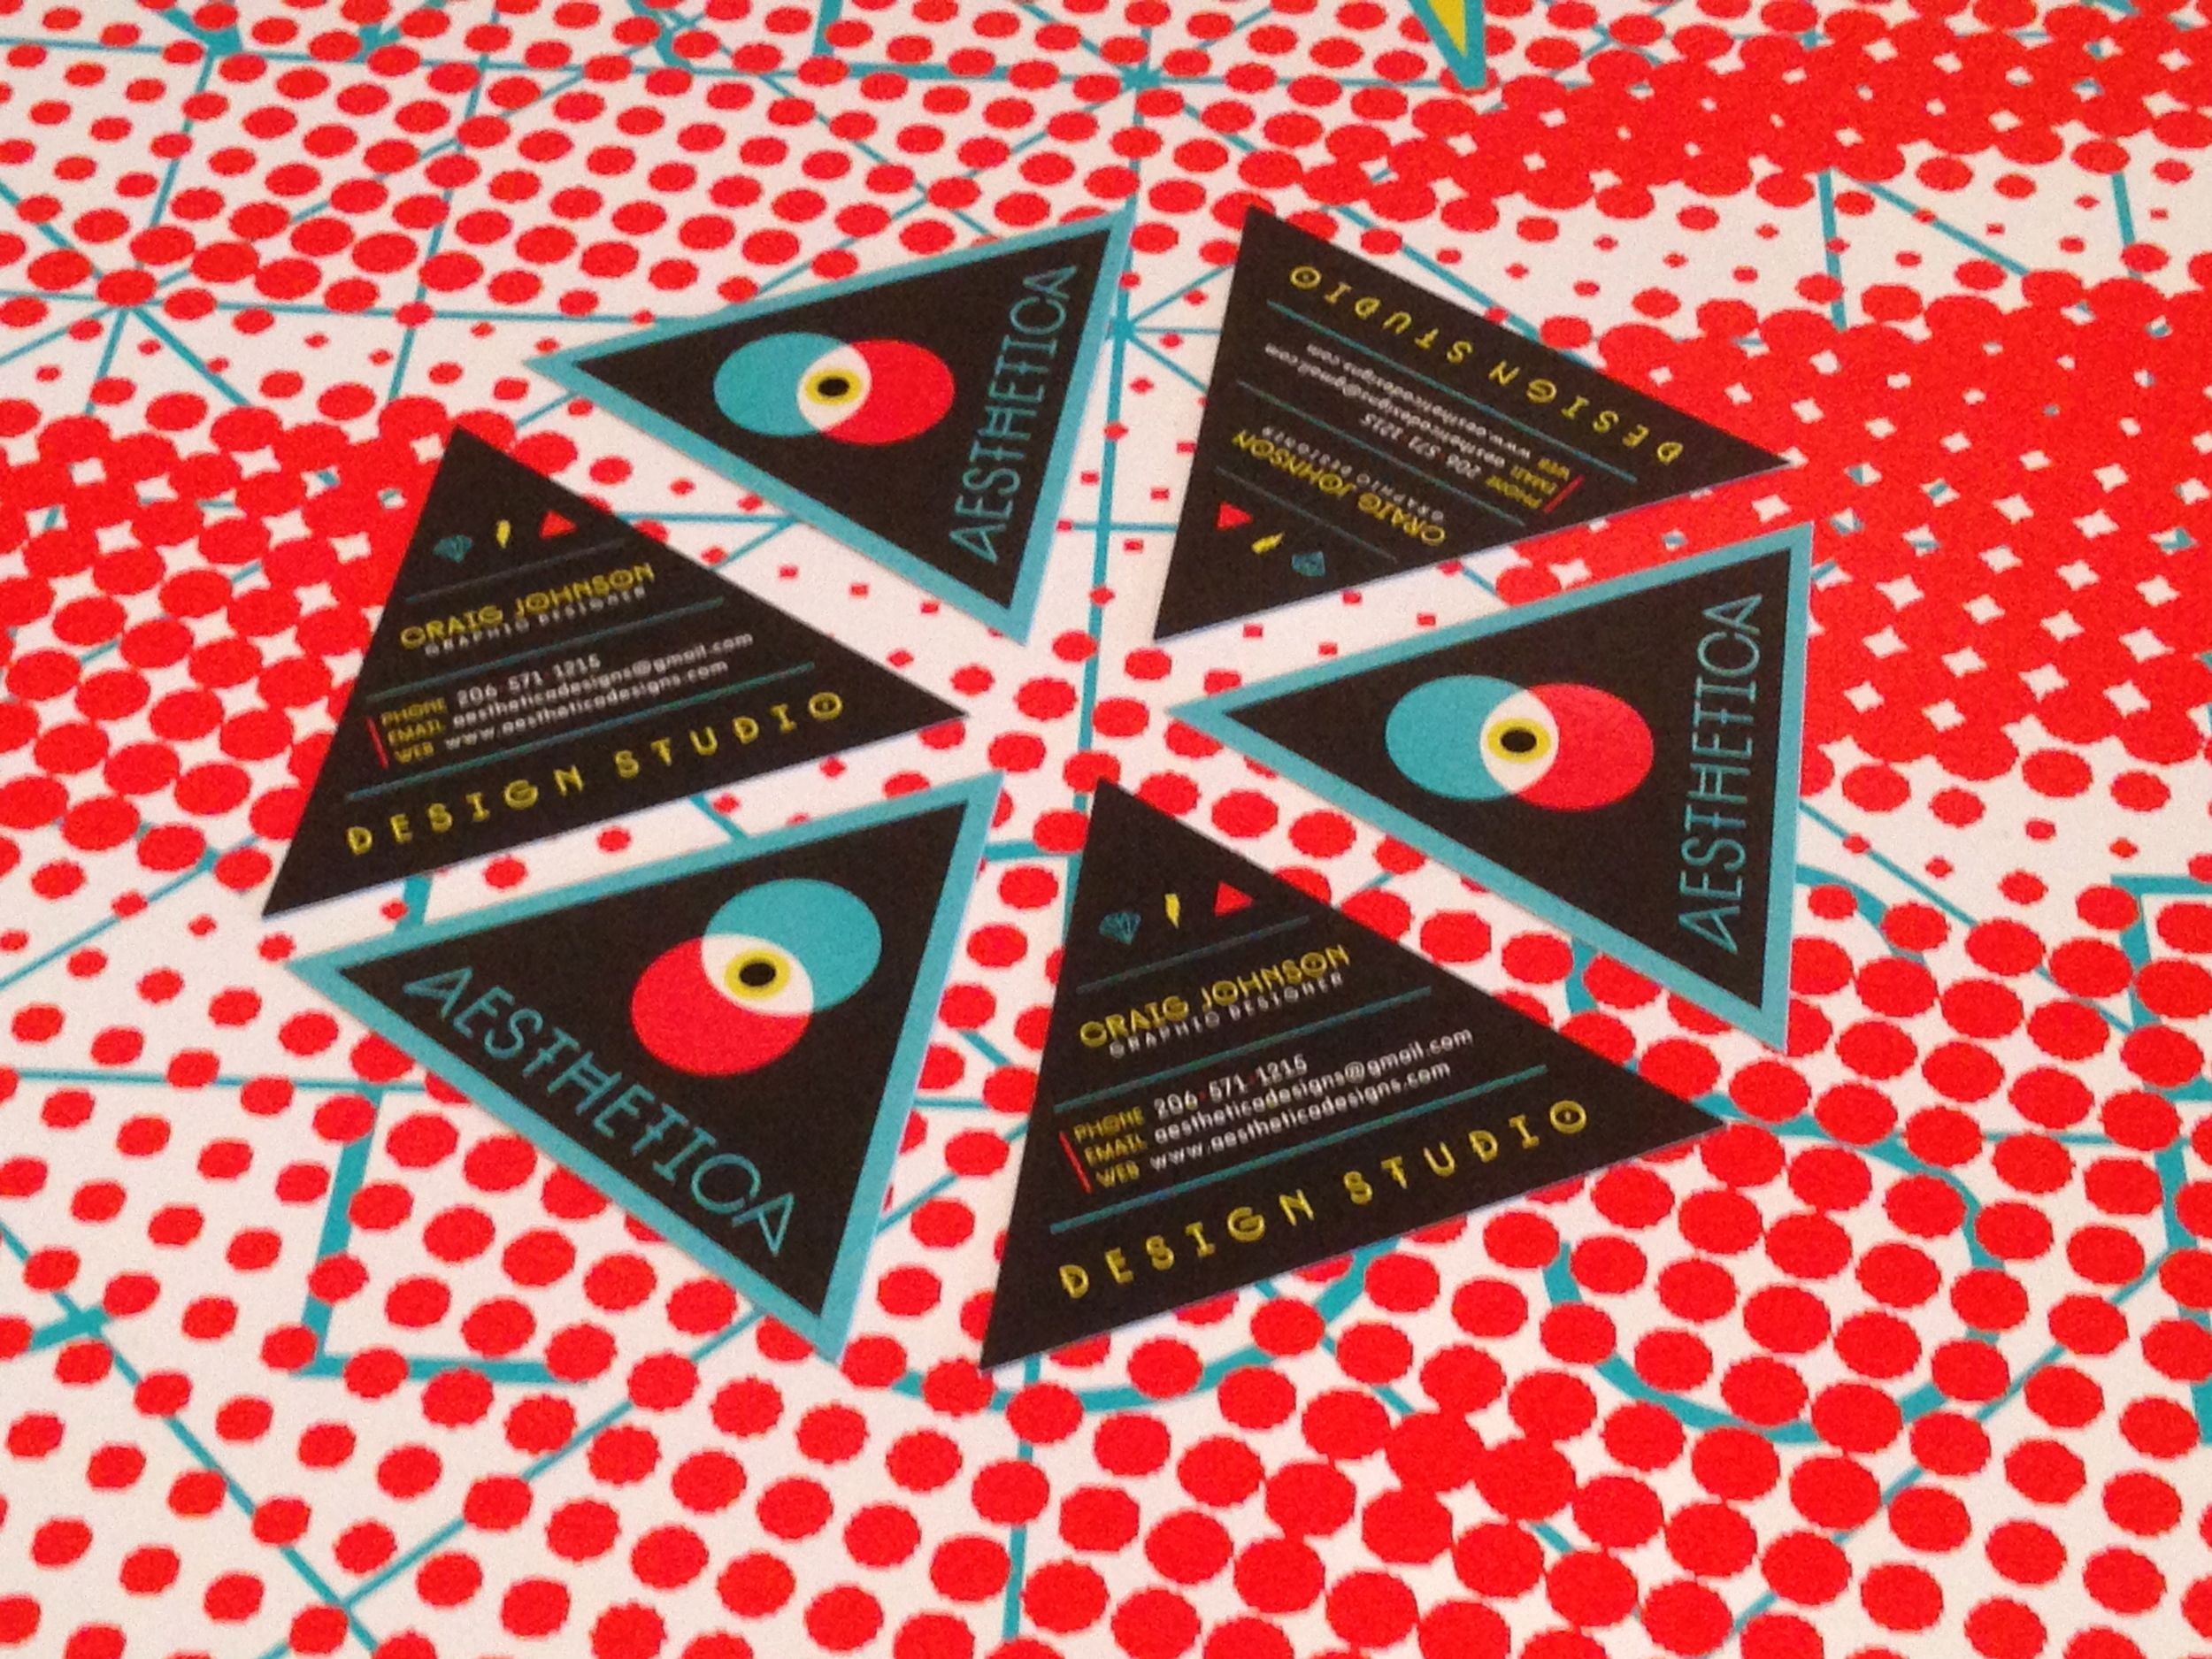 Triangular business cards